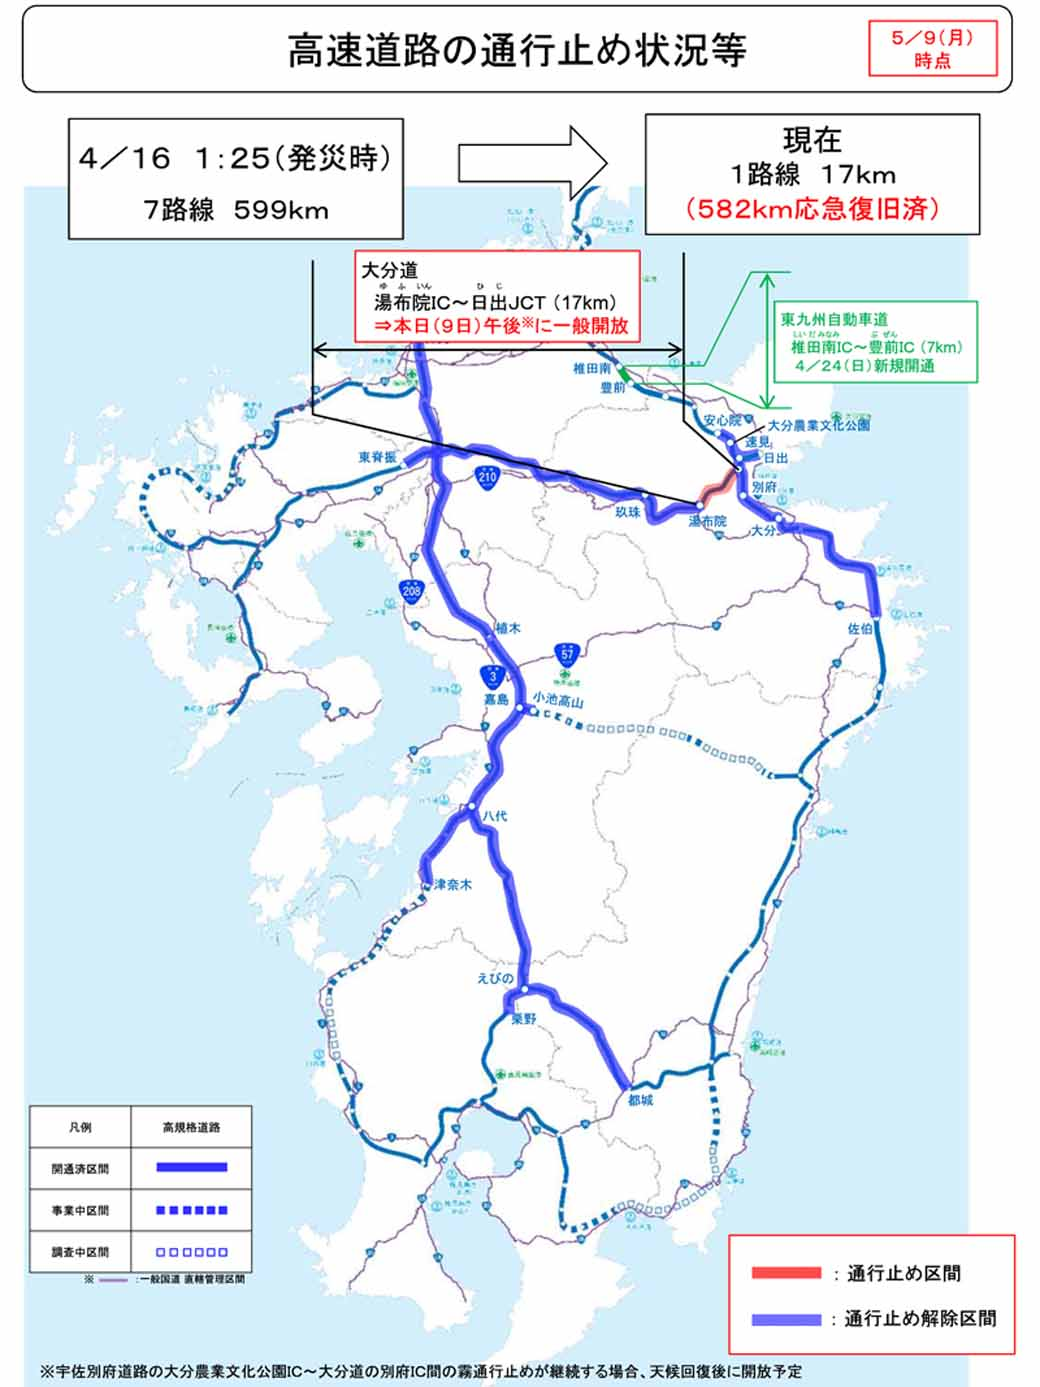 ministry-of-land-infrastructure-and-transport-the-general-open-oita-motorway-25-days-all-of-the-high-speed-road-of-kyushu-recovery-for-the-first-time-in20160509-1